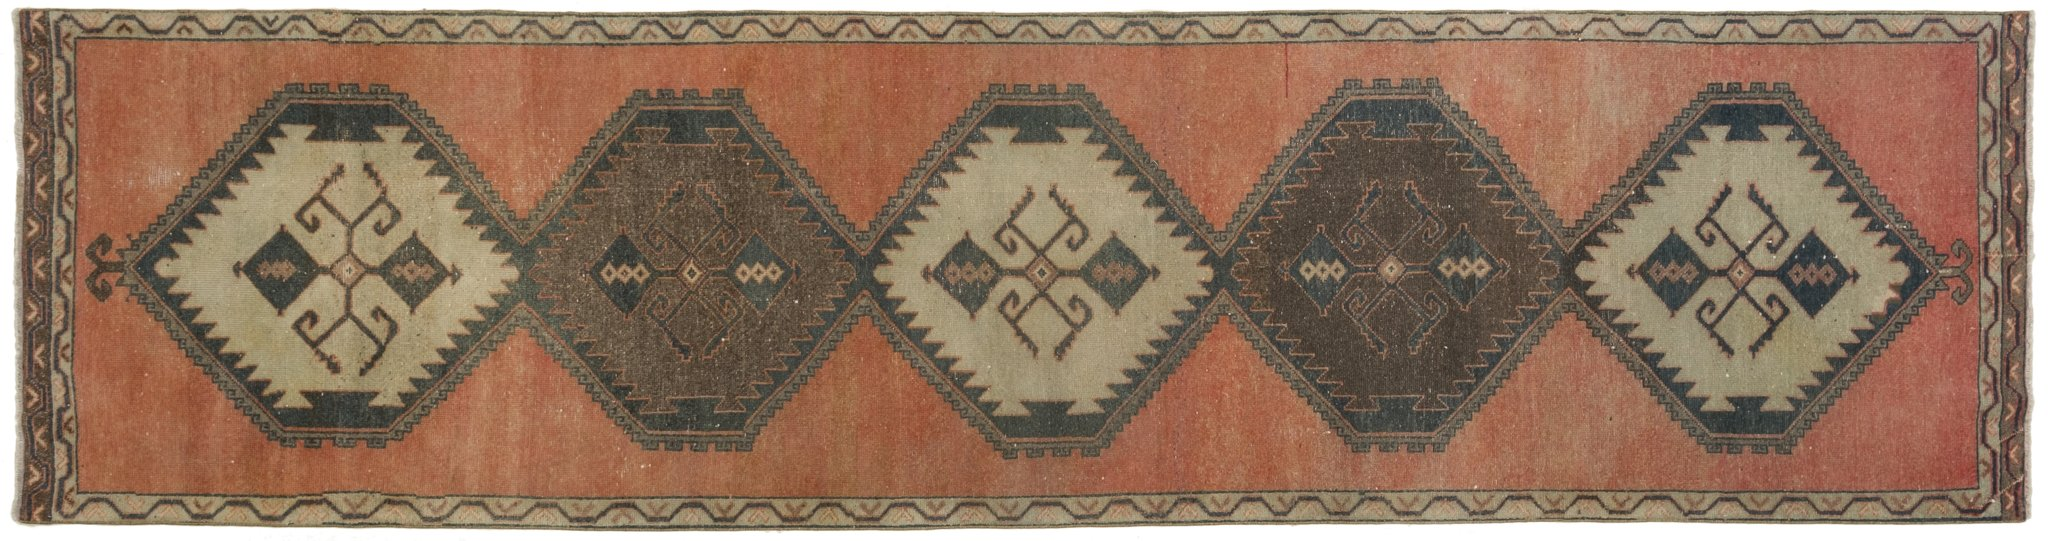 Vintage Turkish Runner Rug Aleksey